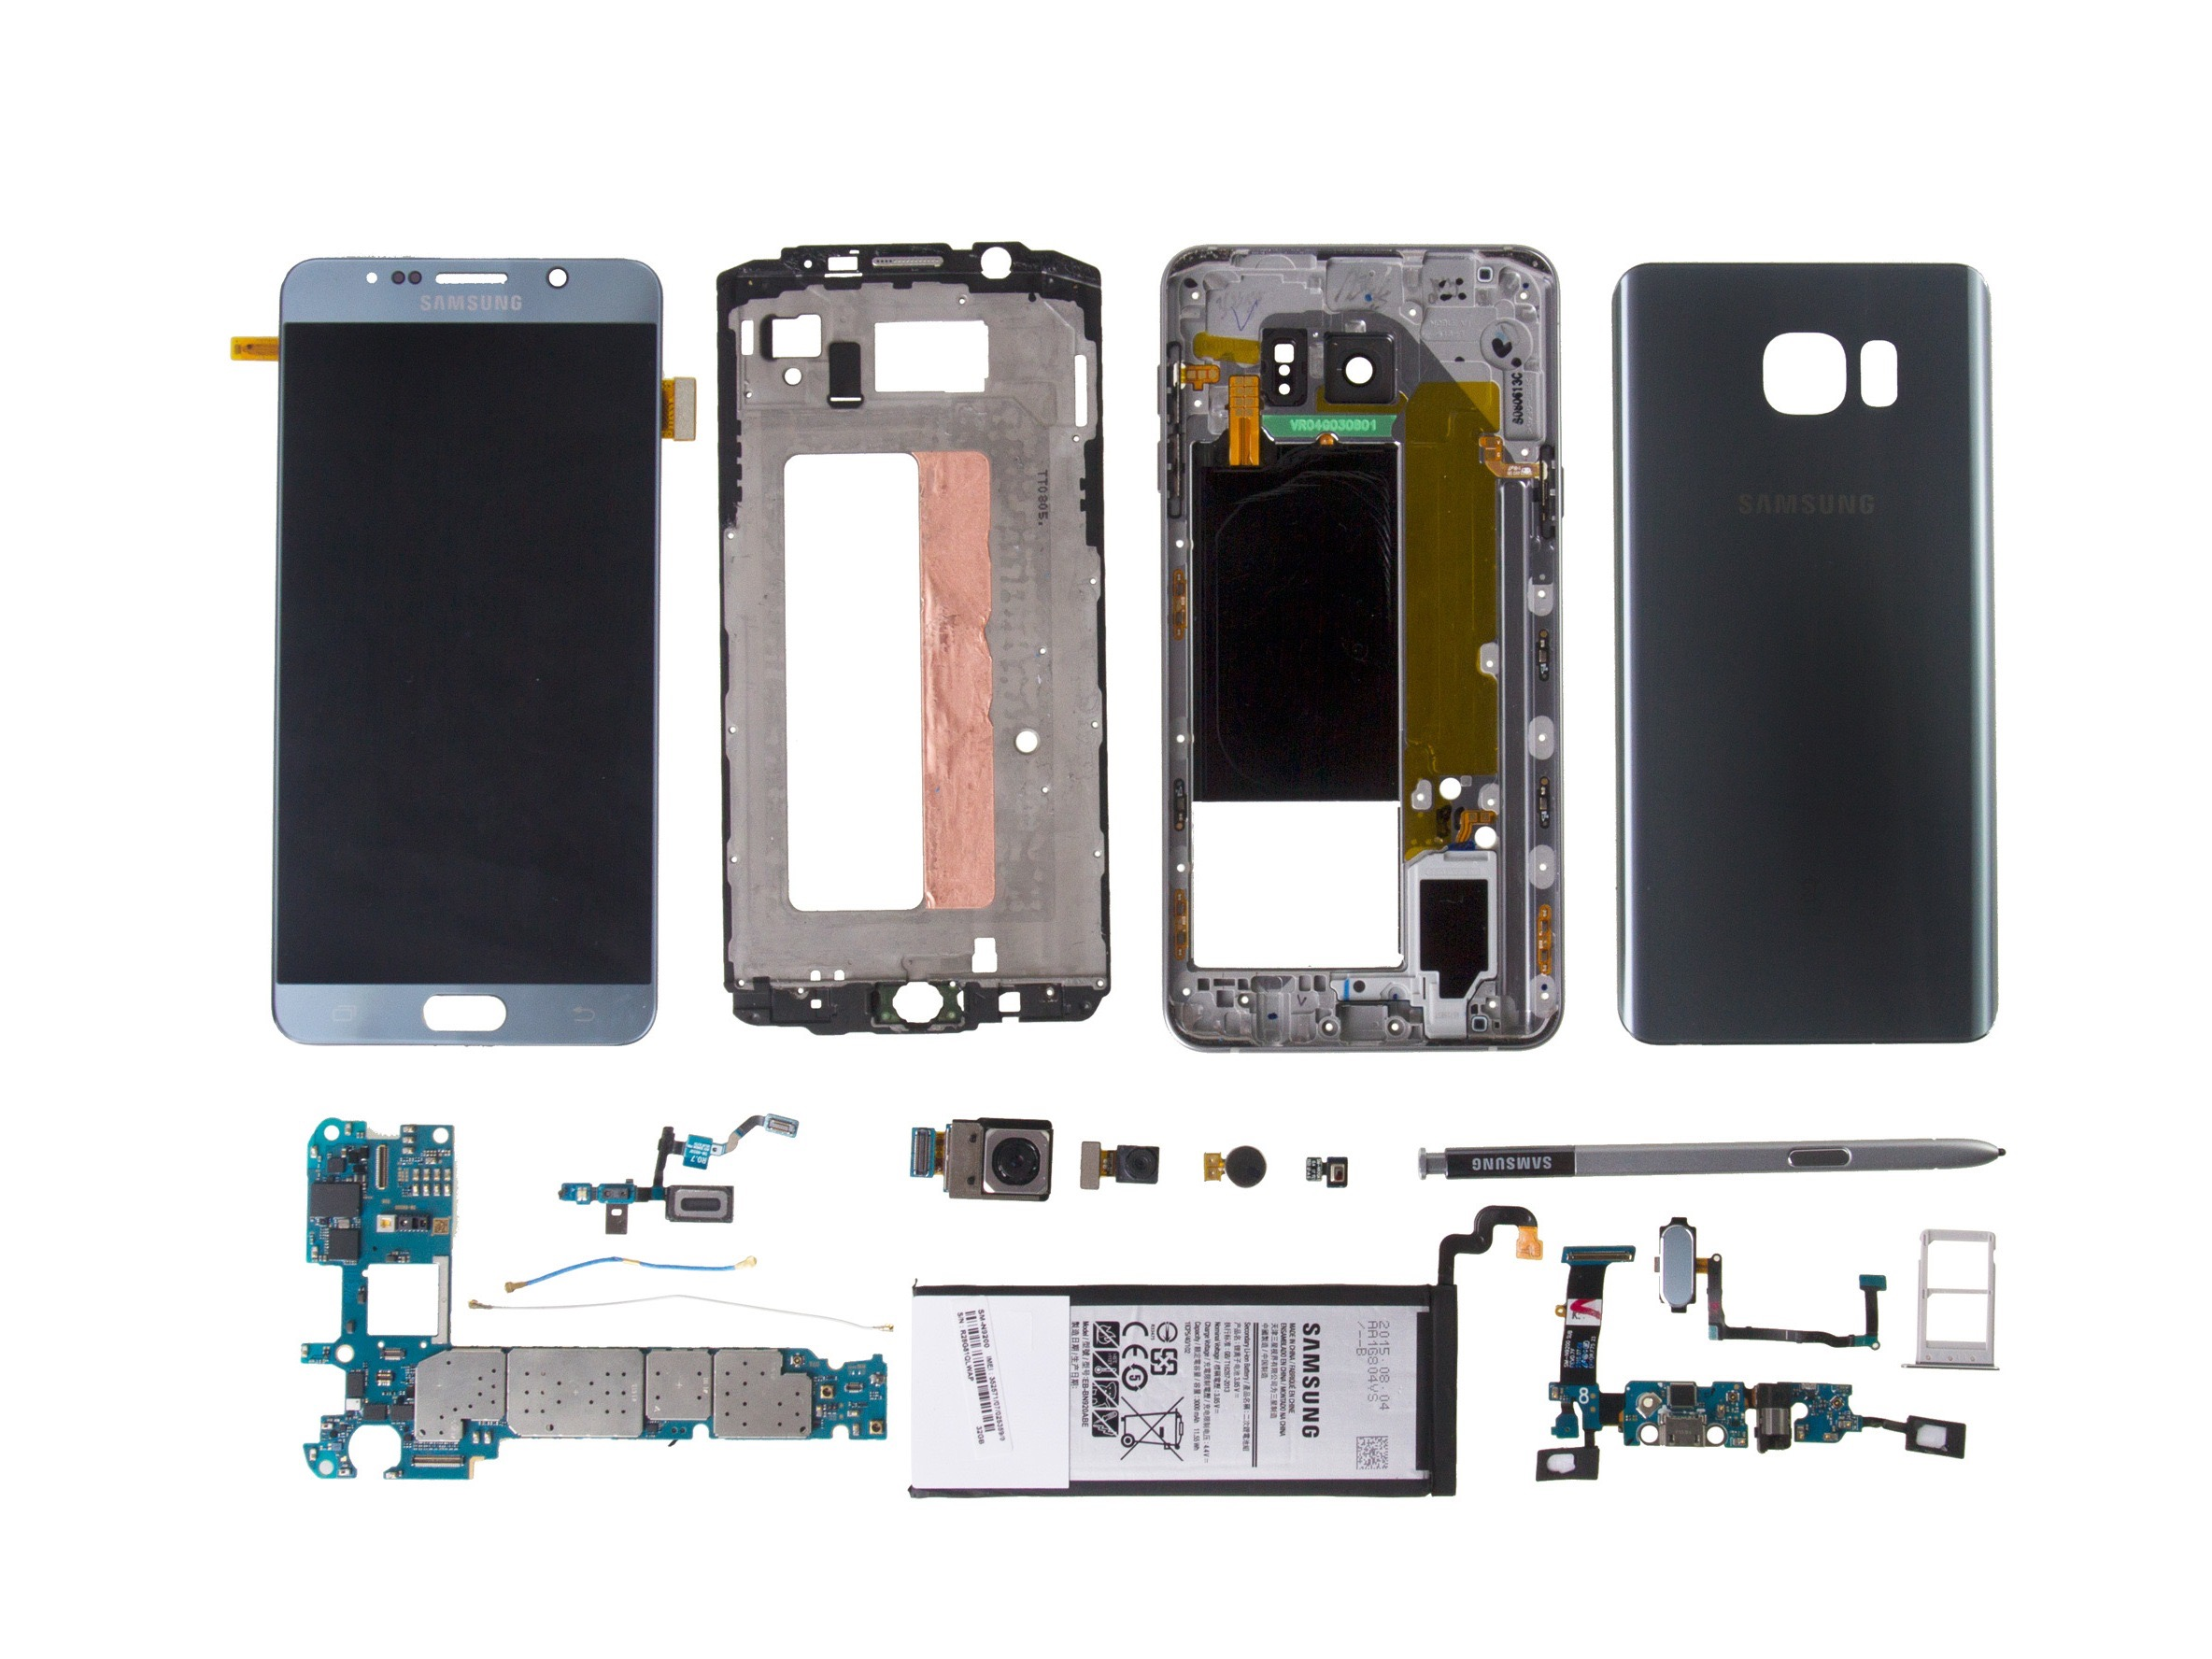 Iphone 6s Exploded Parts Diagram Electrical Wiring 5 30 Mins Cell Phone Repair Samsung Internal Antenna Screen